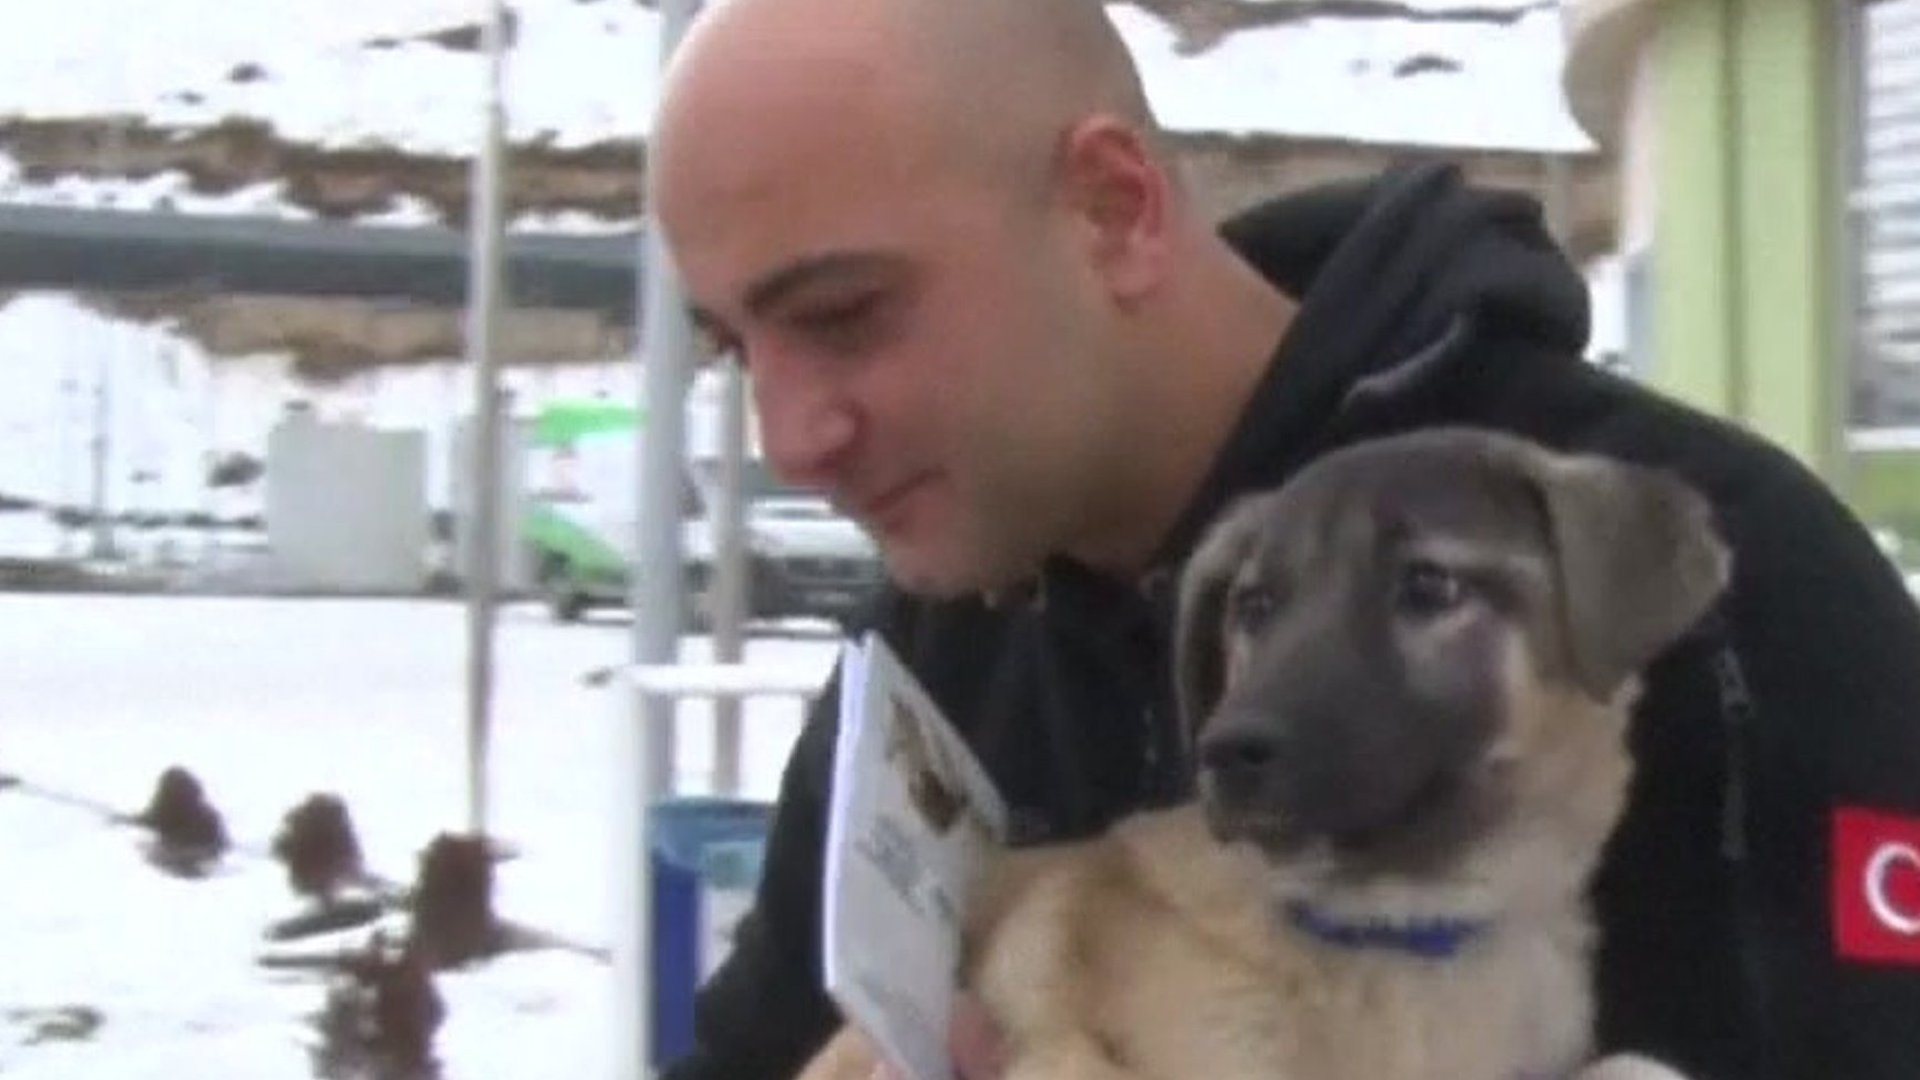 Police diver adopts dog rescued from icy lake